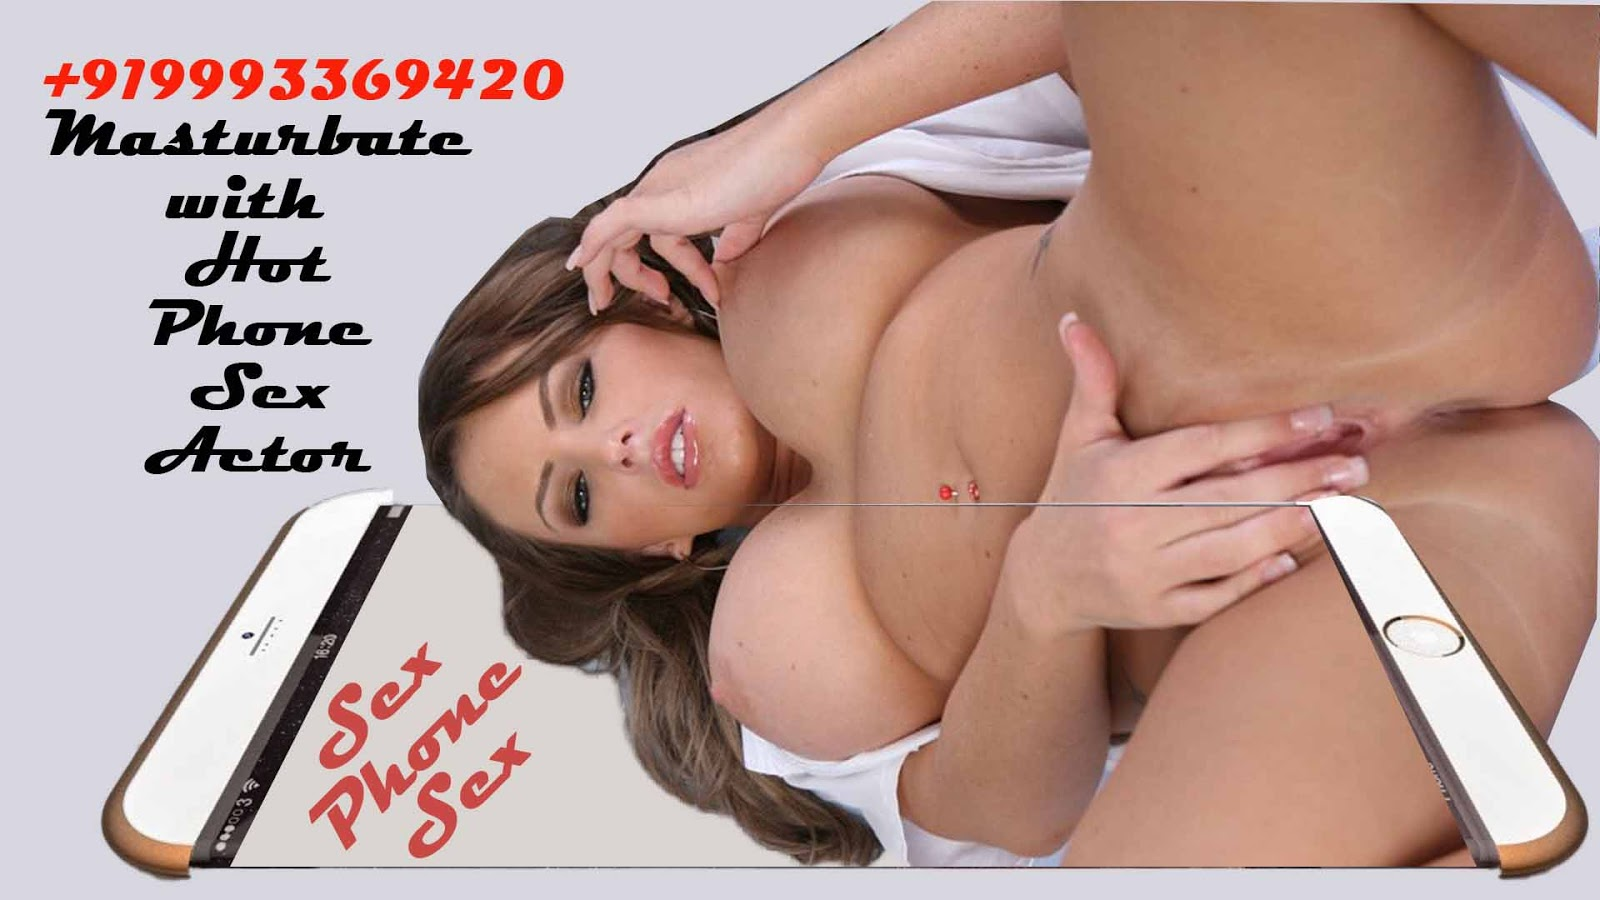 Sex video phone hot How to